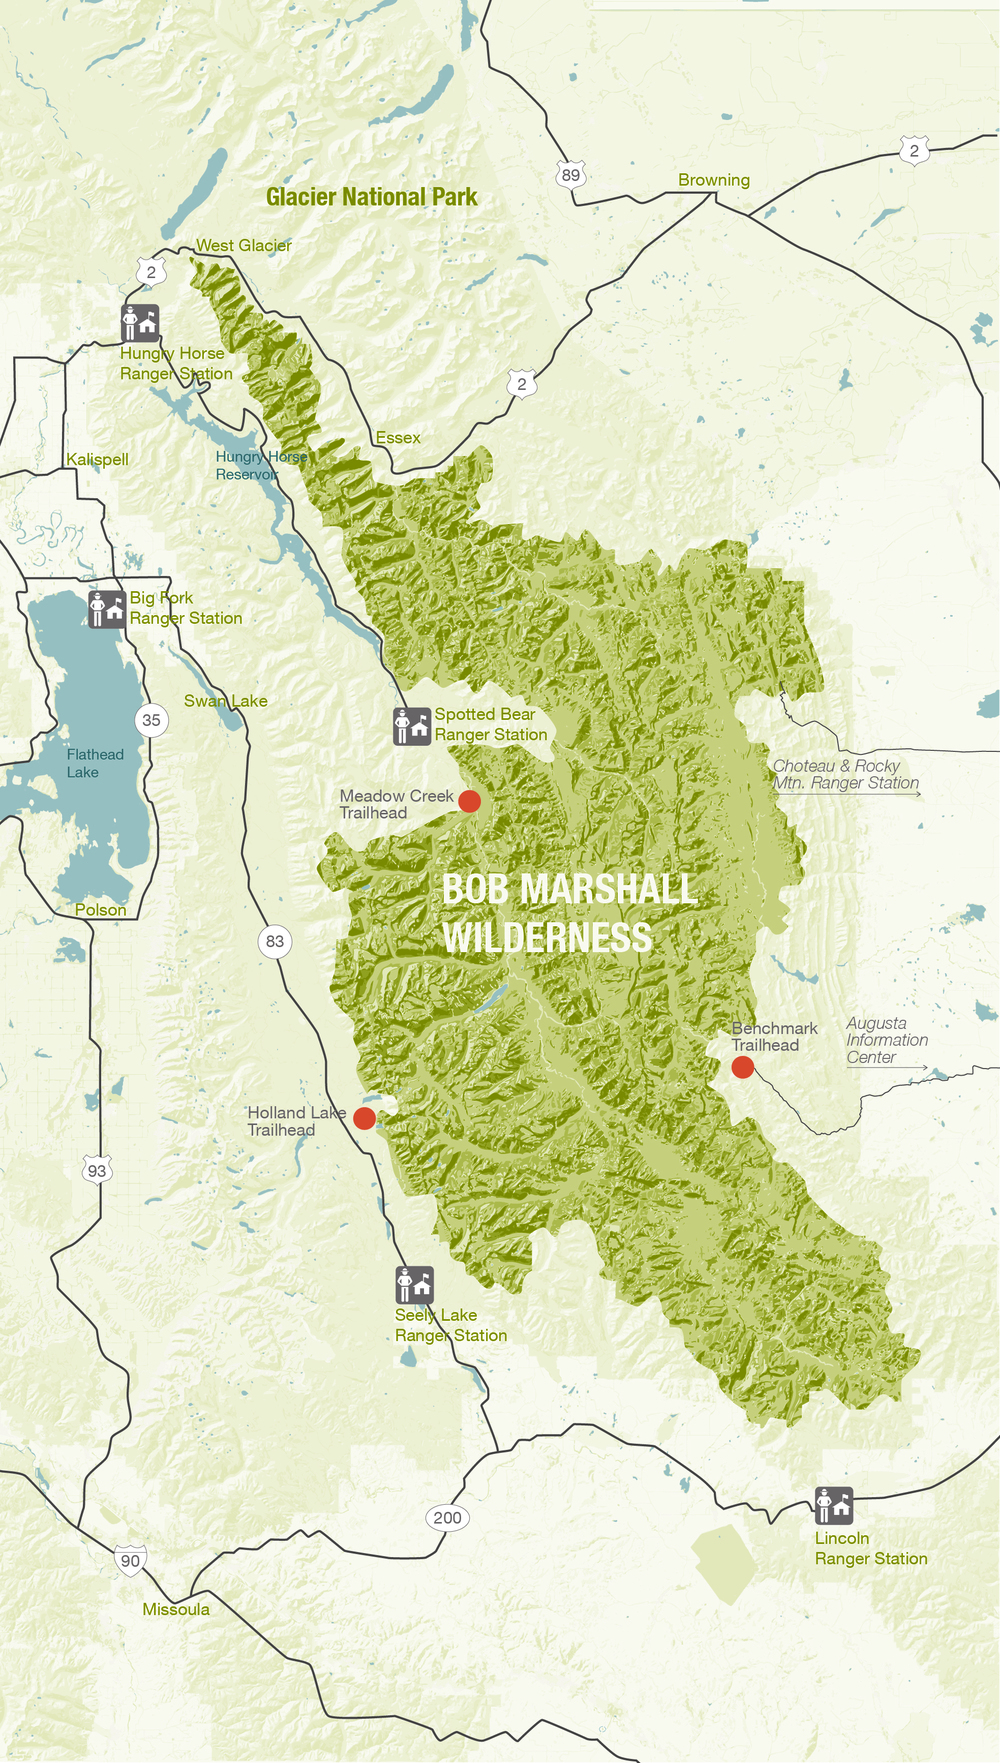 US Forest Service Motor Vehicle Use Maps Now Available Gaia GPS - Us forest service maps montana